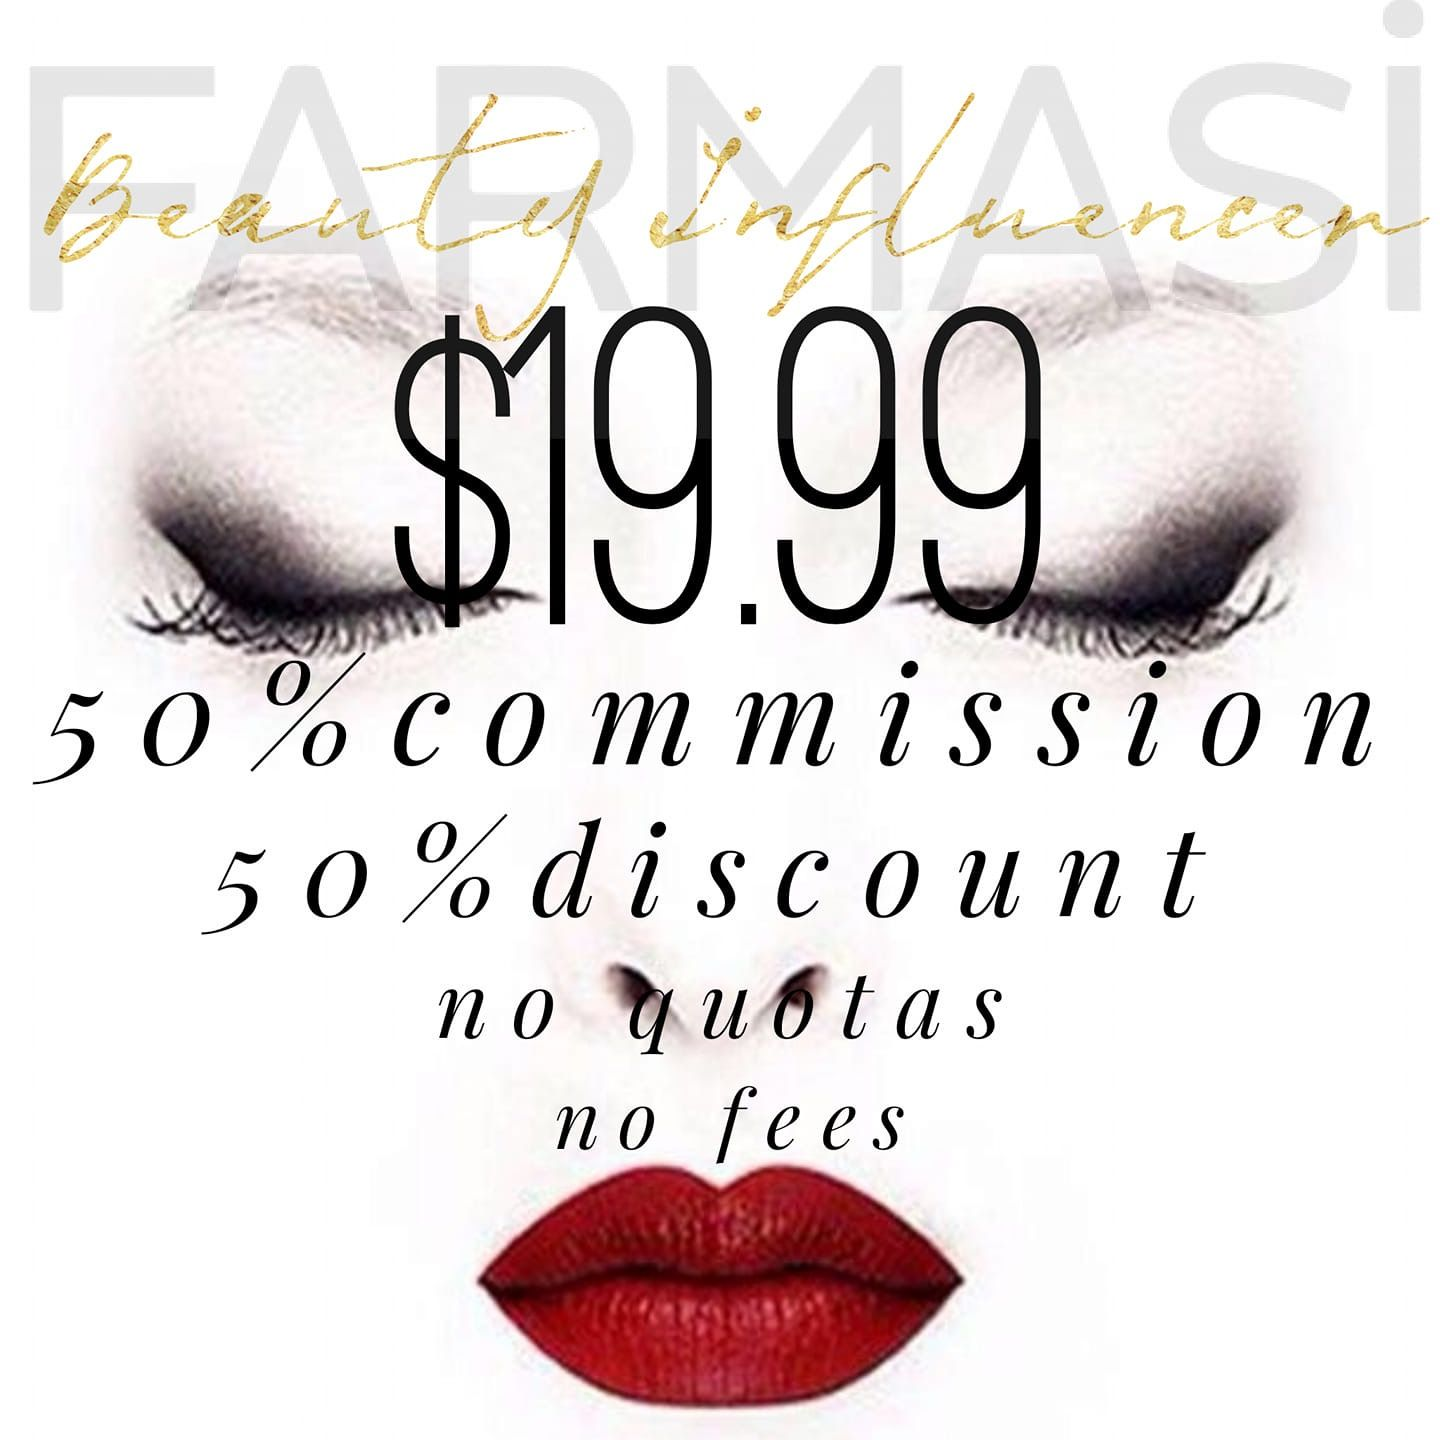 Why choose Farmasi 💁🏼‍♀️ 👄 19.99 to join 👄 3 OPTIONAL